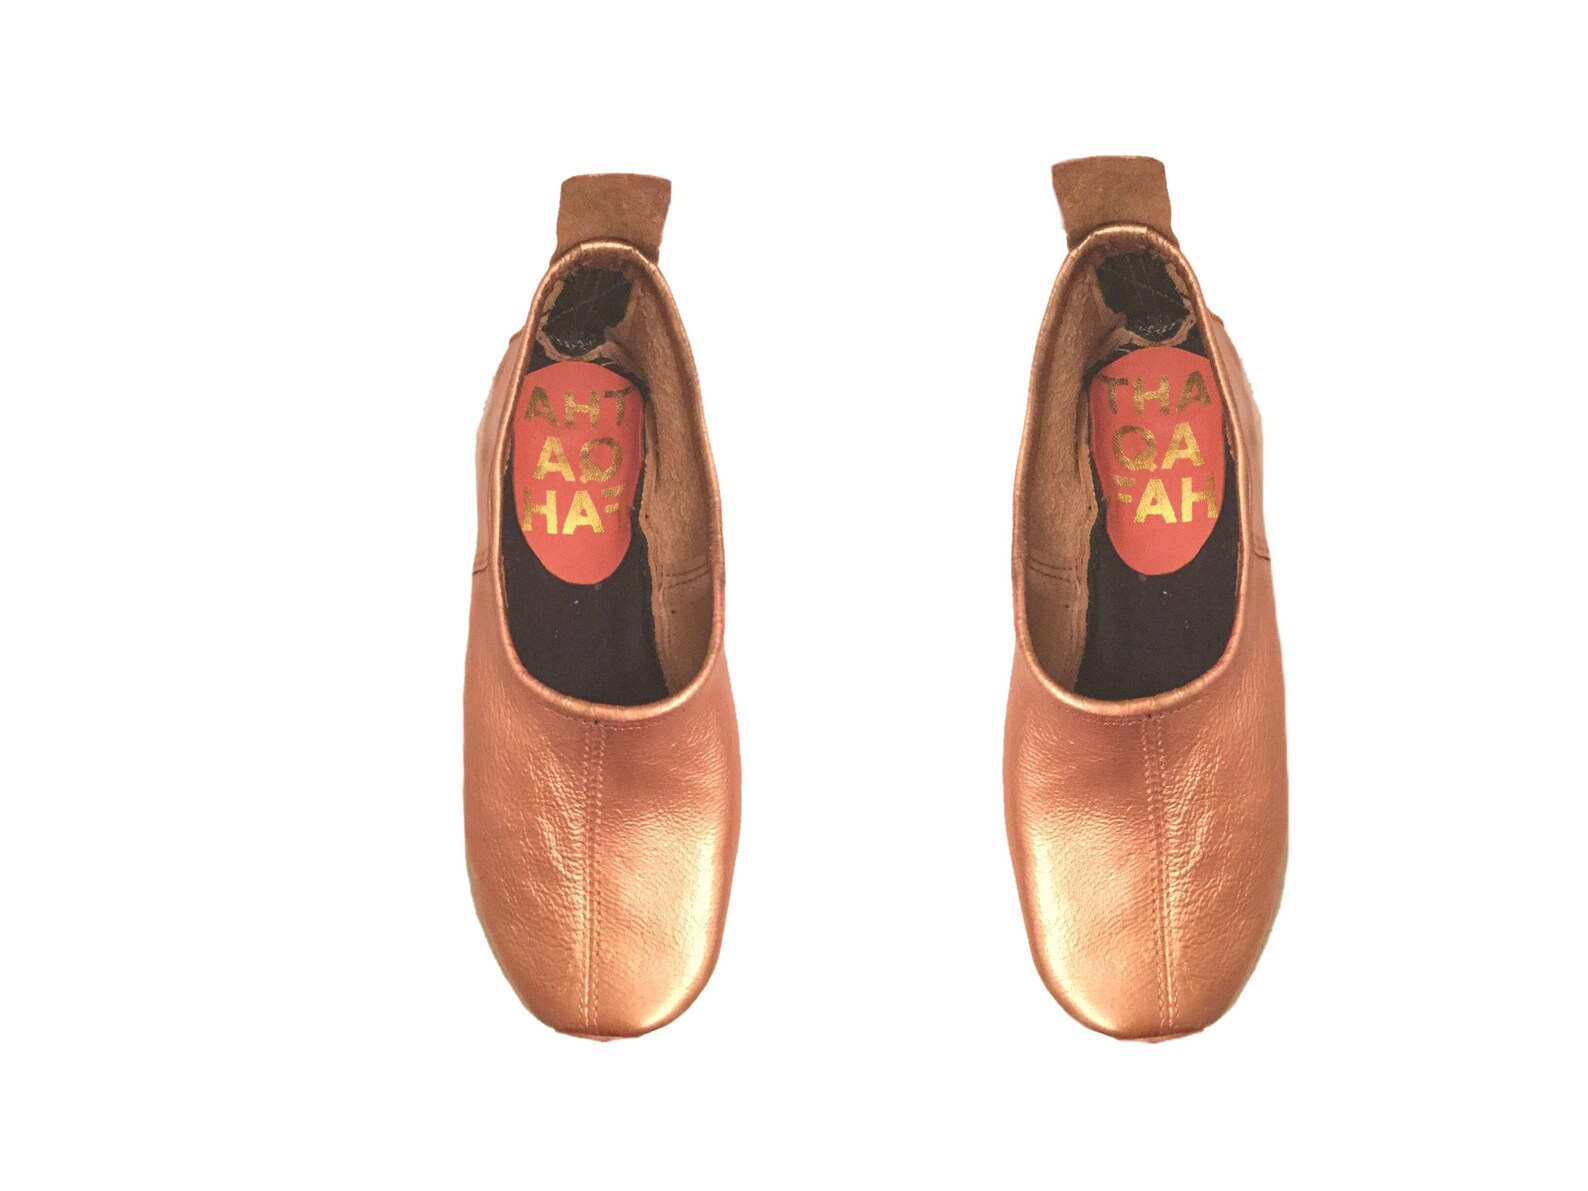 travel shoes,tabi shoes, leather slippers, house shoes, gift for her ,ballet flats,loafers,